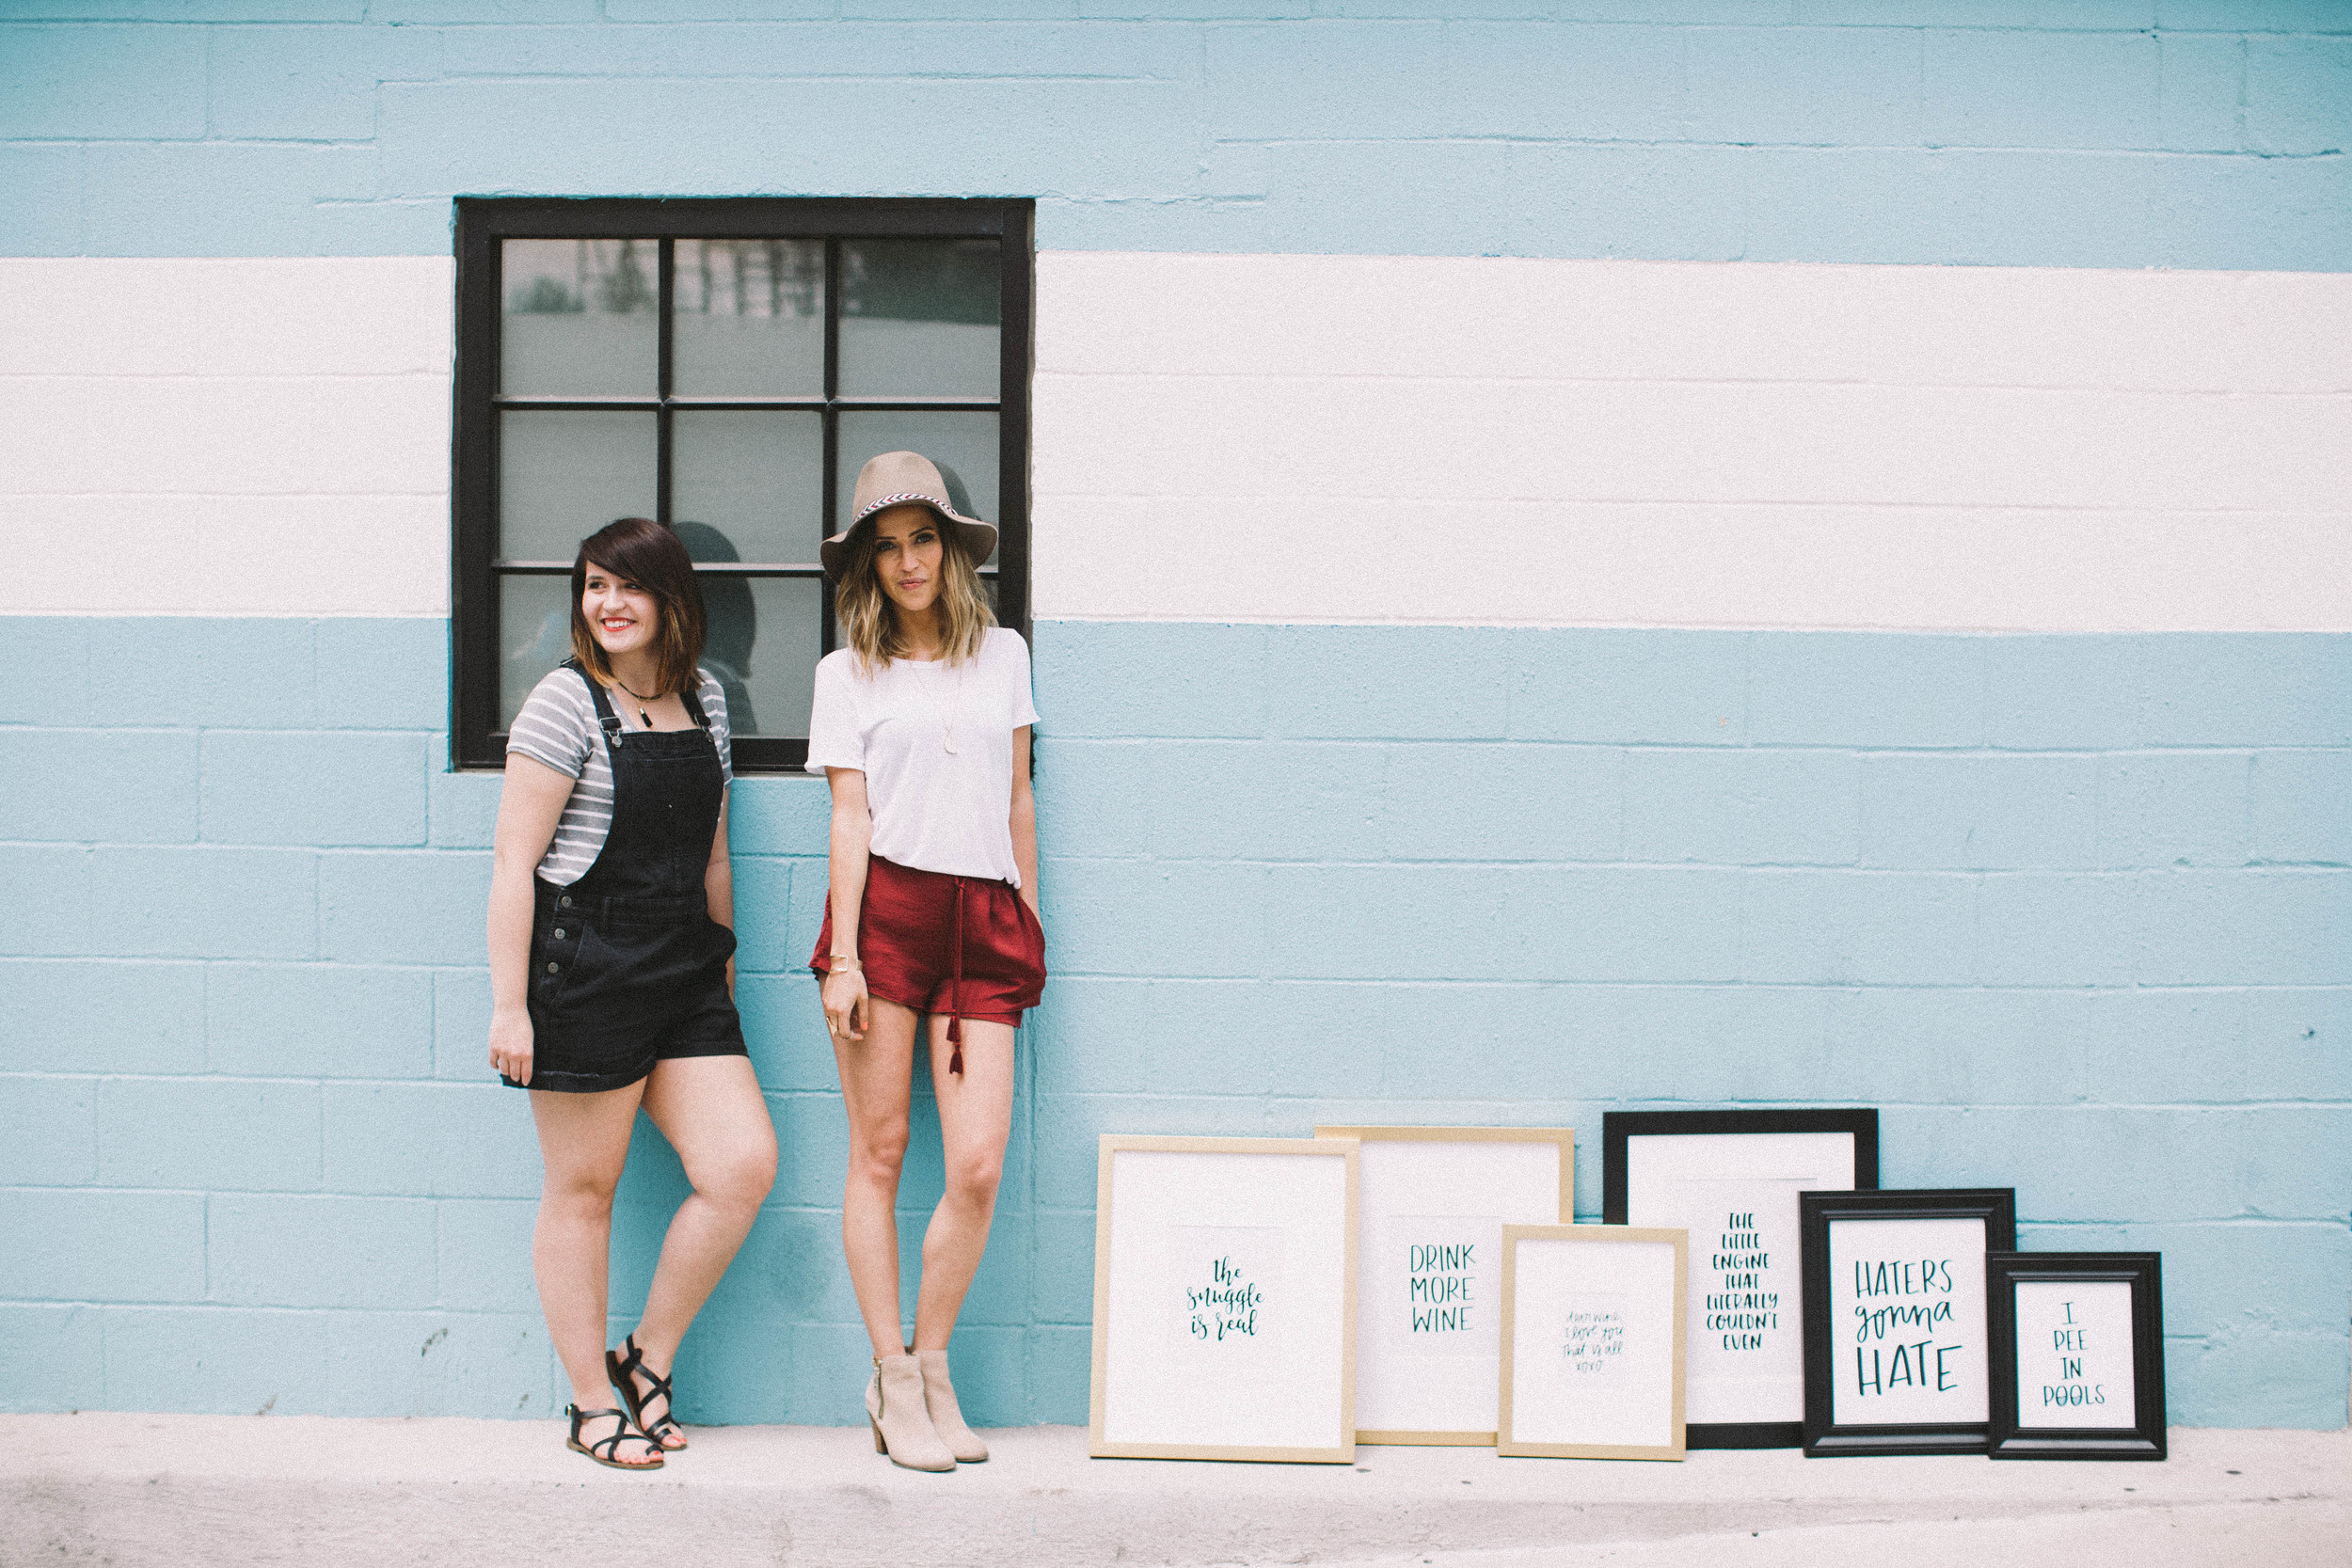 Chelcey Tate x Kaitlyn Bristowe Collection www.chelceytatedesigns.com